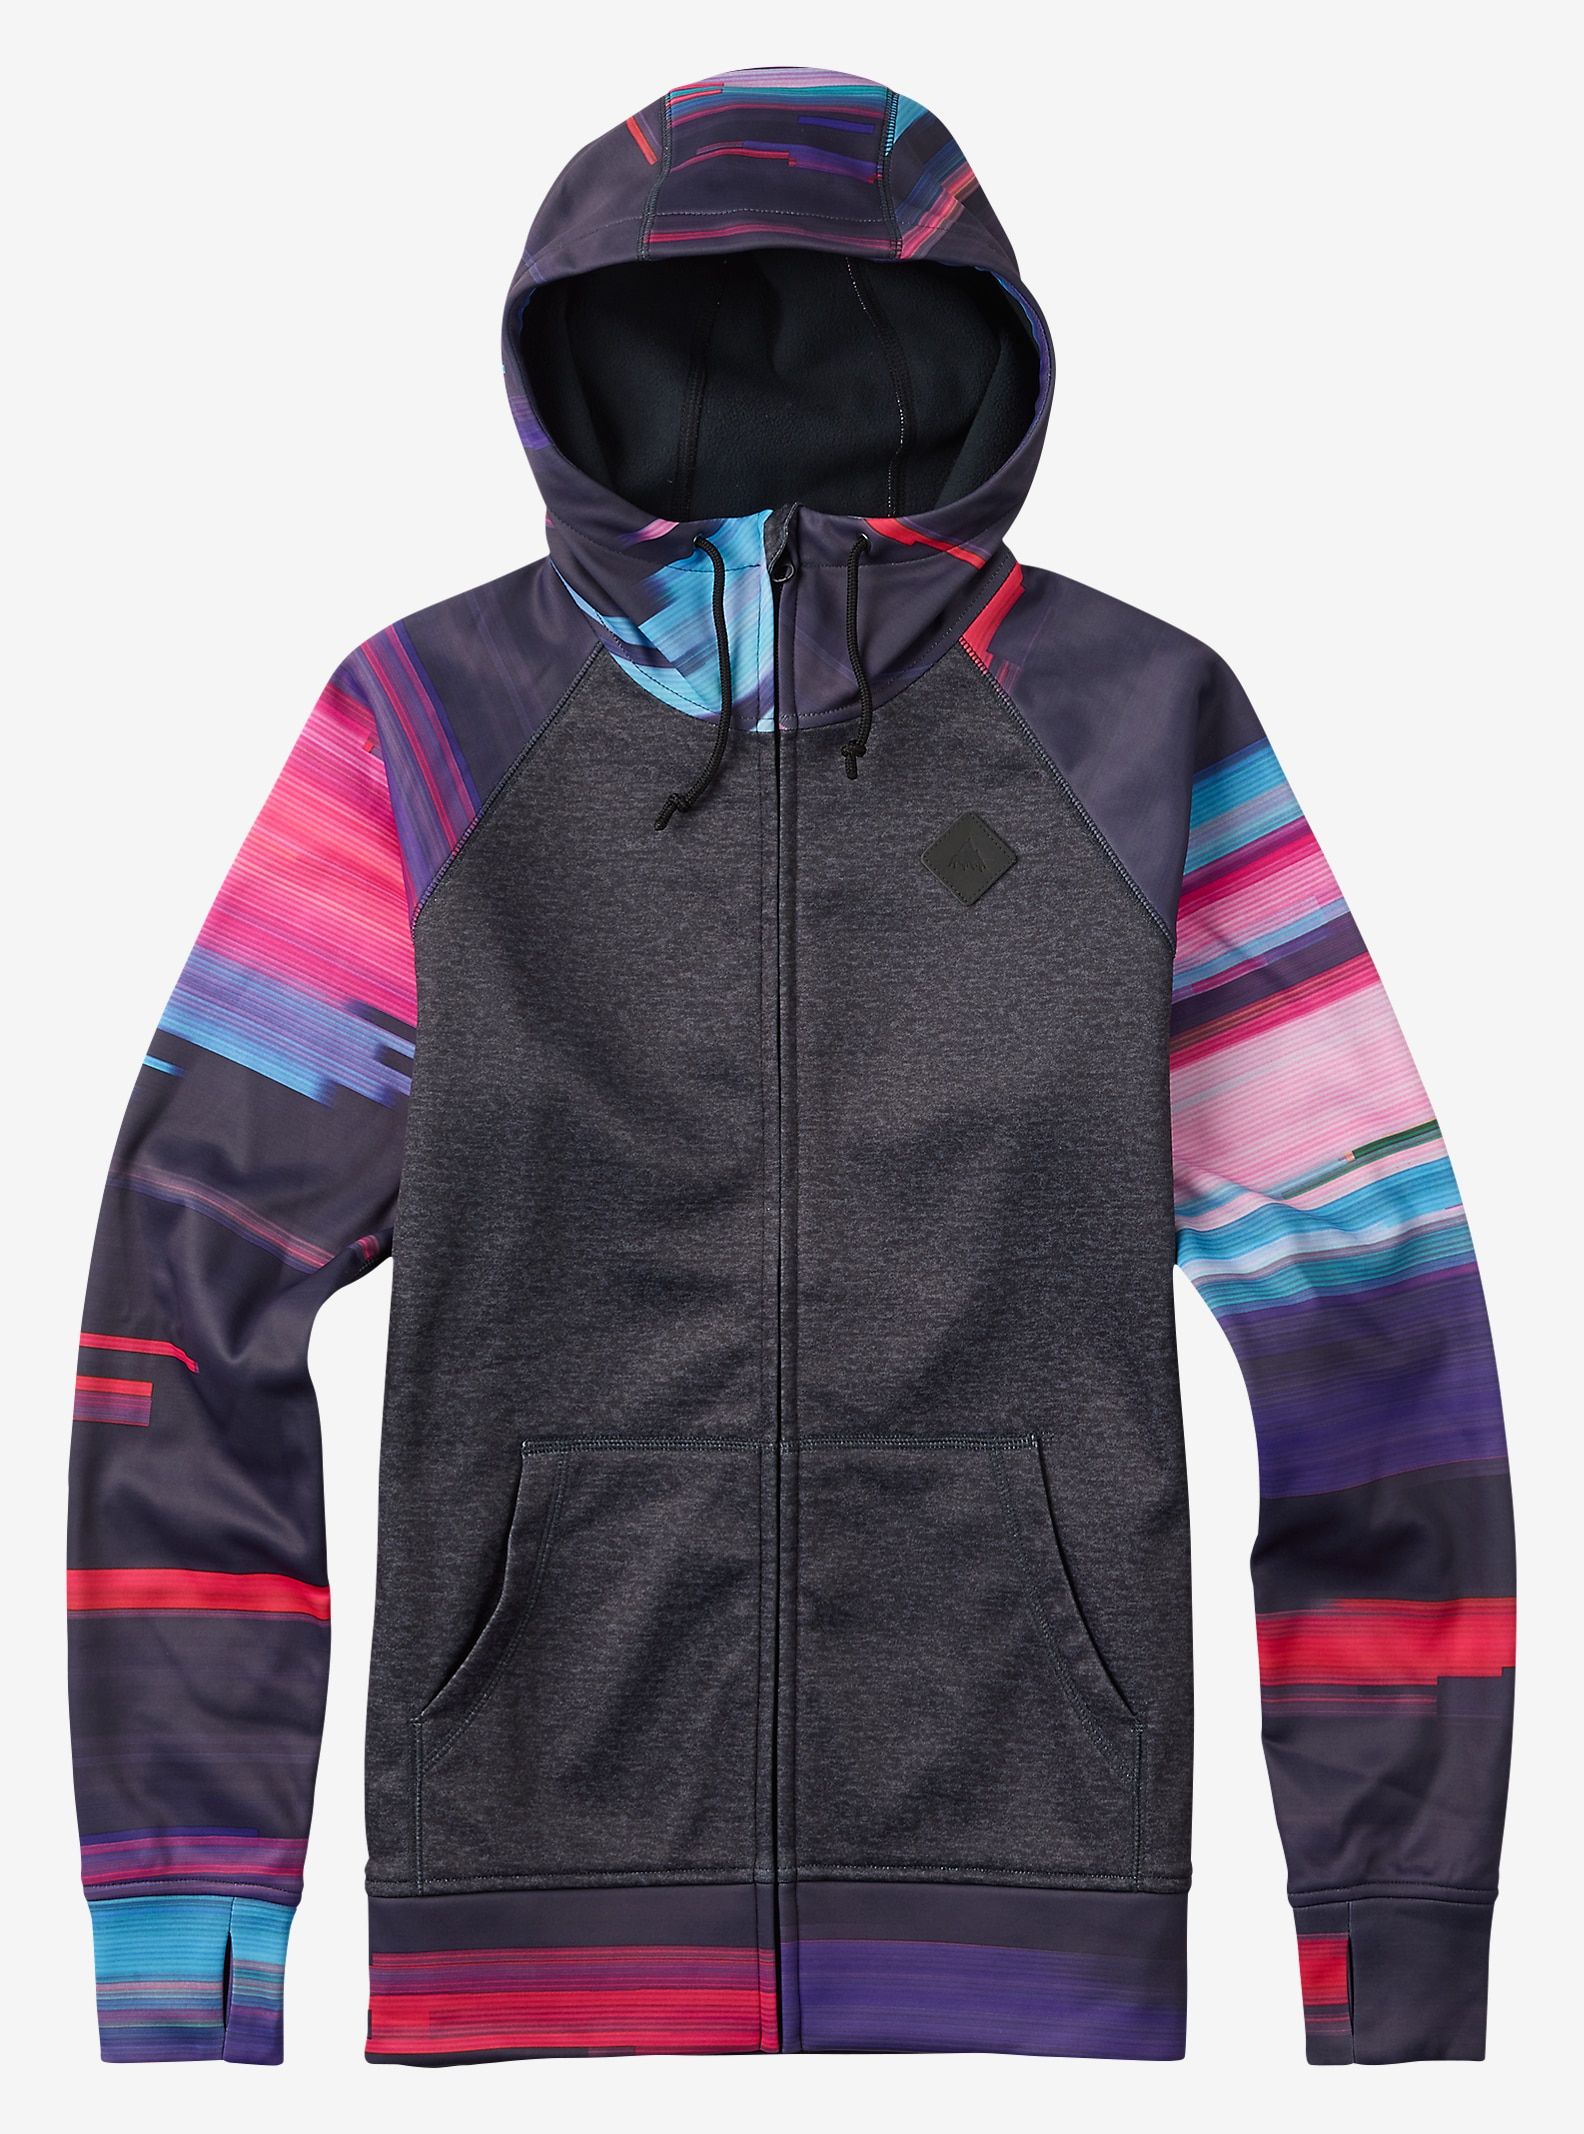 Burton - Chandail à capuchon Scoop affichage en True Black Heather / Flynn Glitch